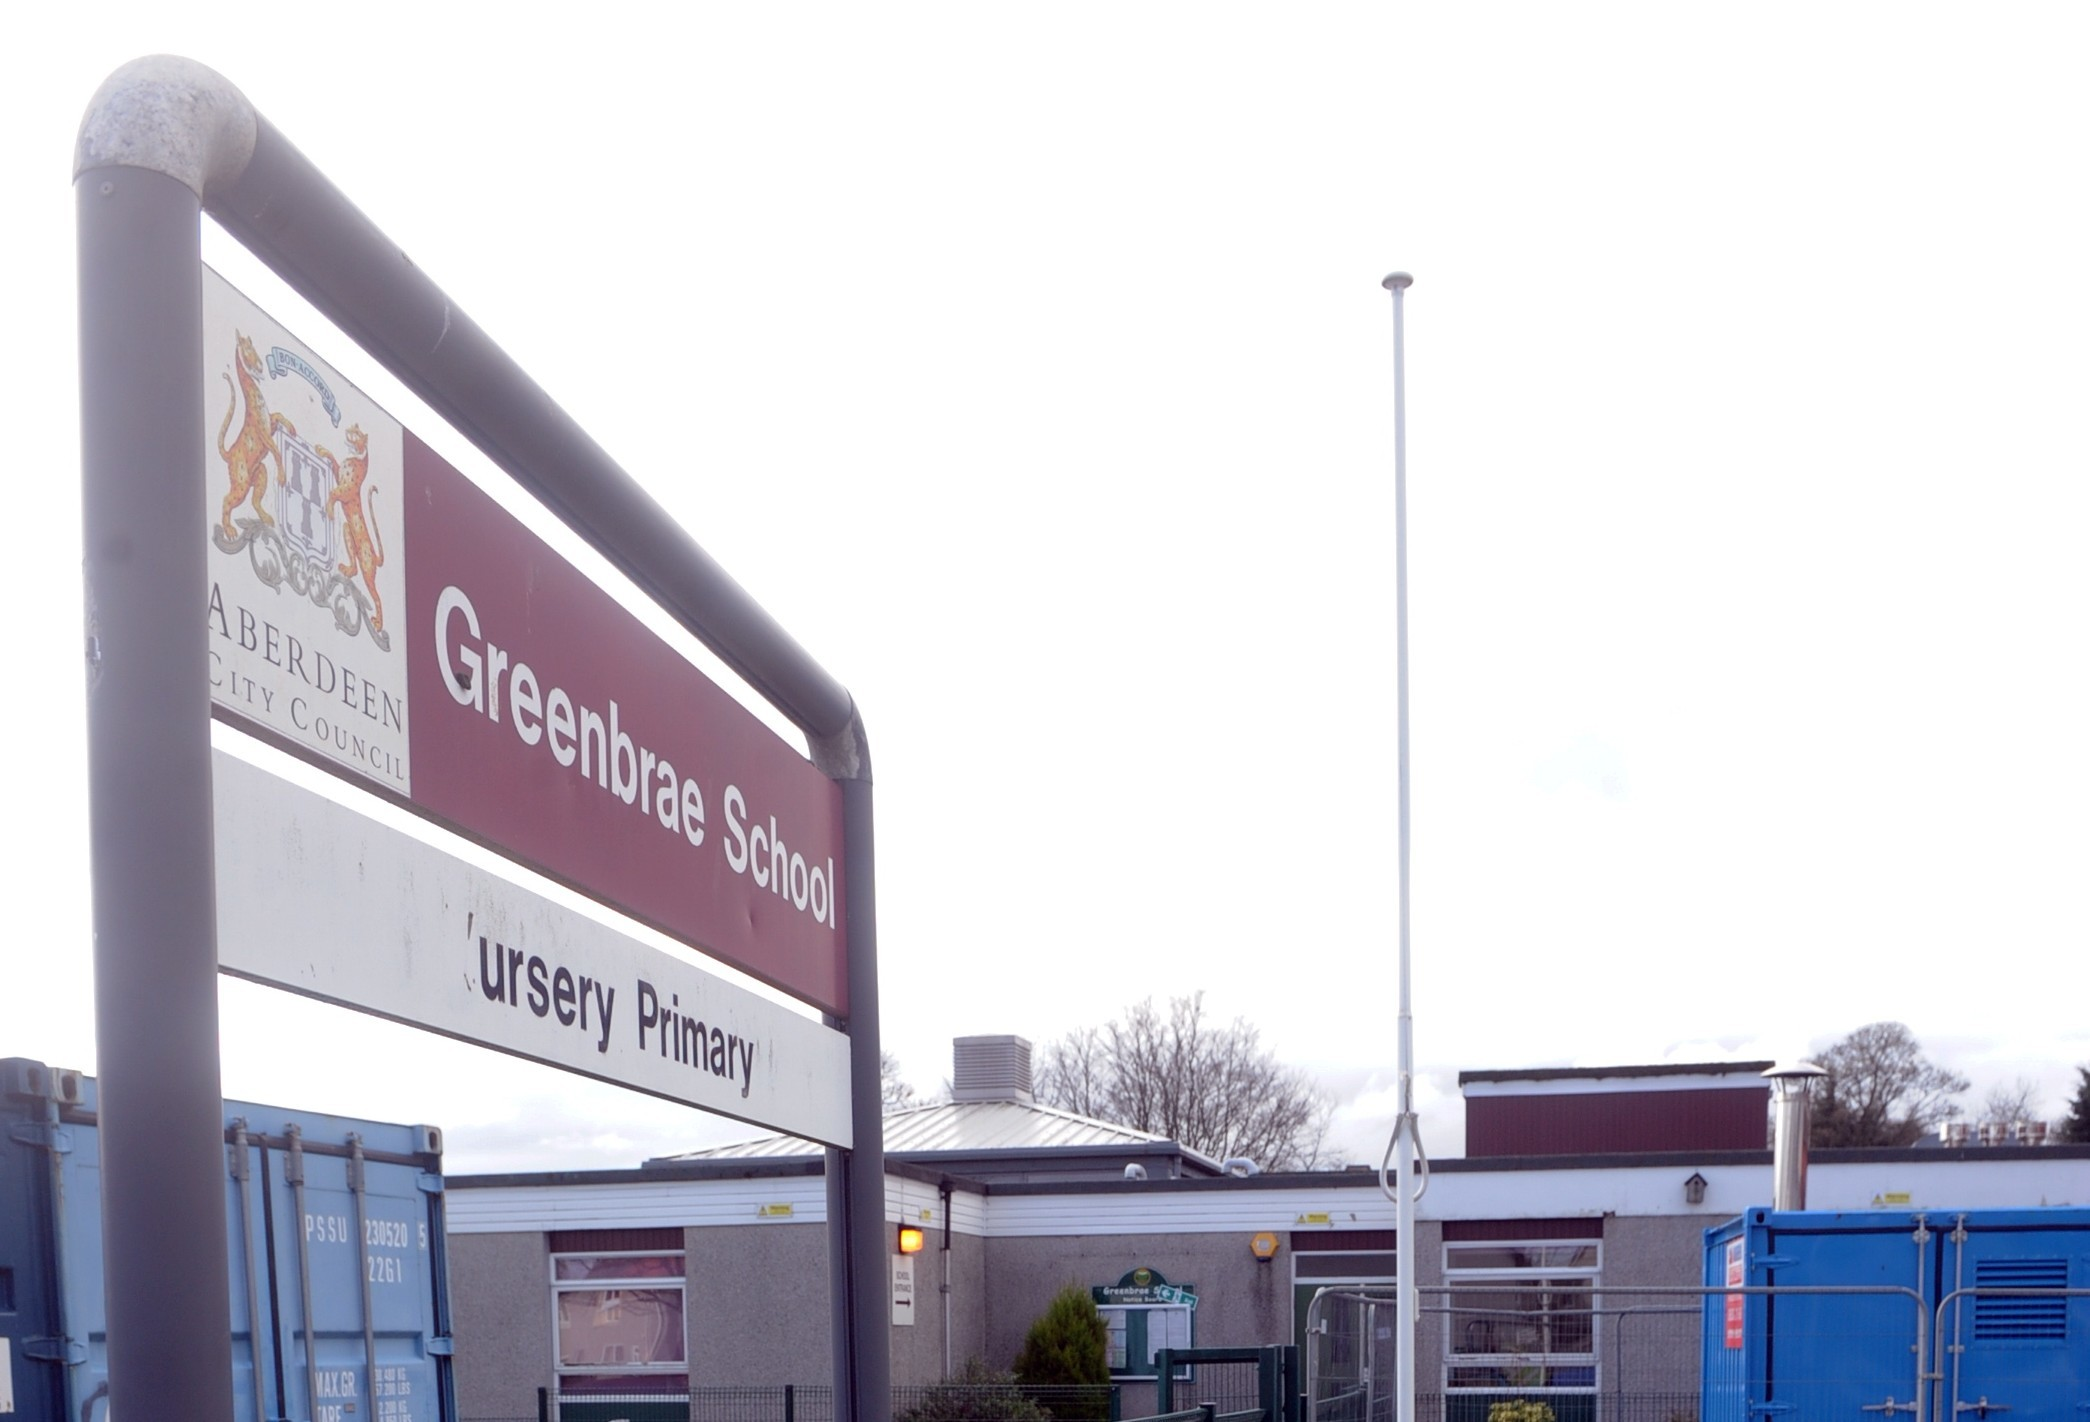 Police send out letters to residents after trouble at Greenbrae School.